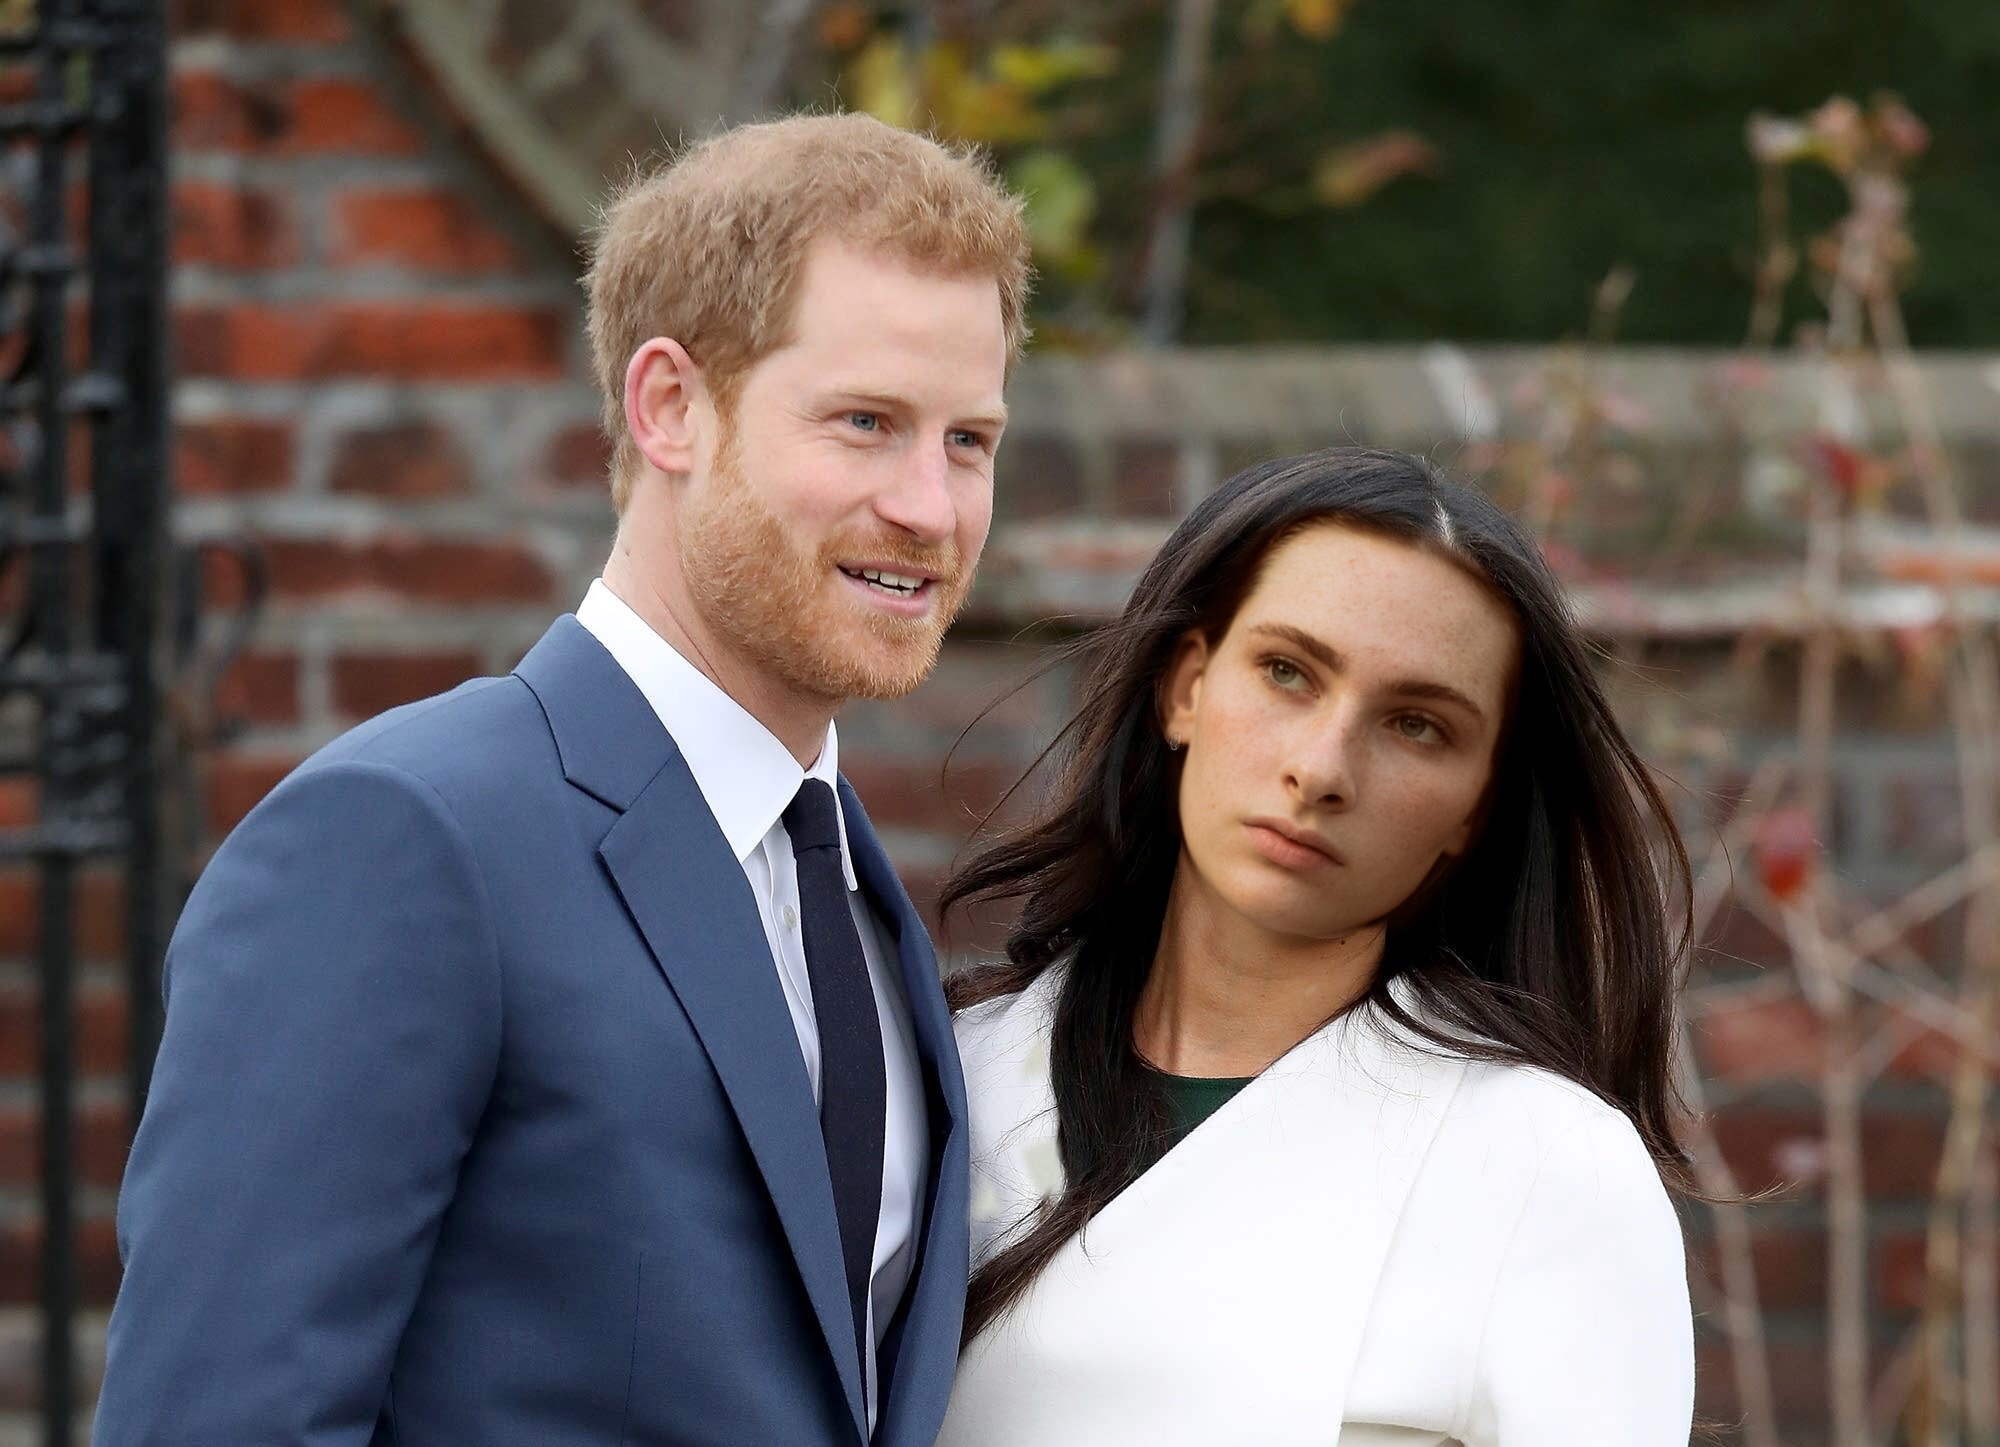 #royalwedding